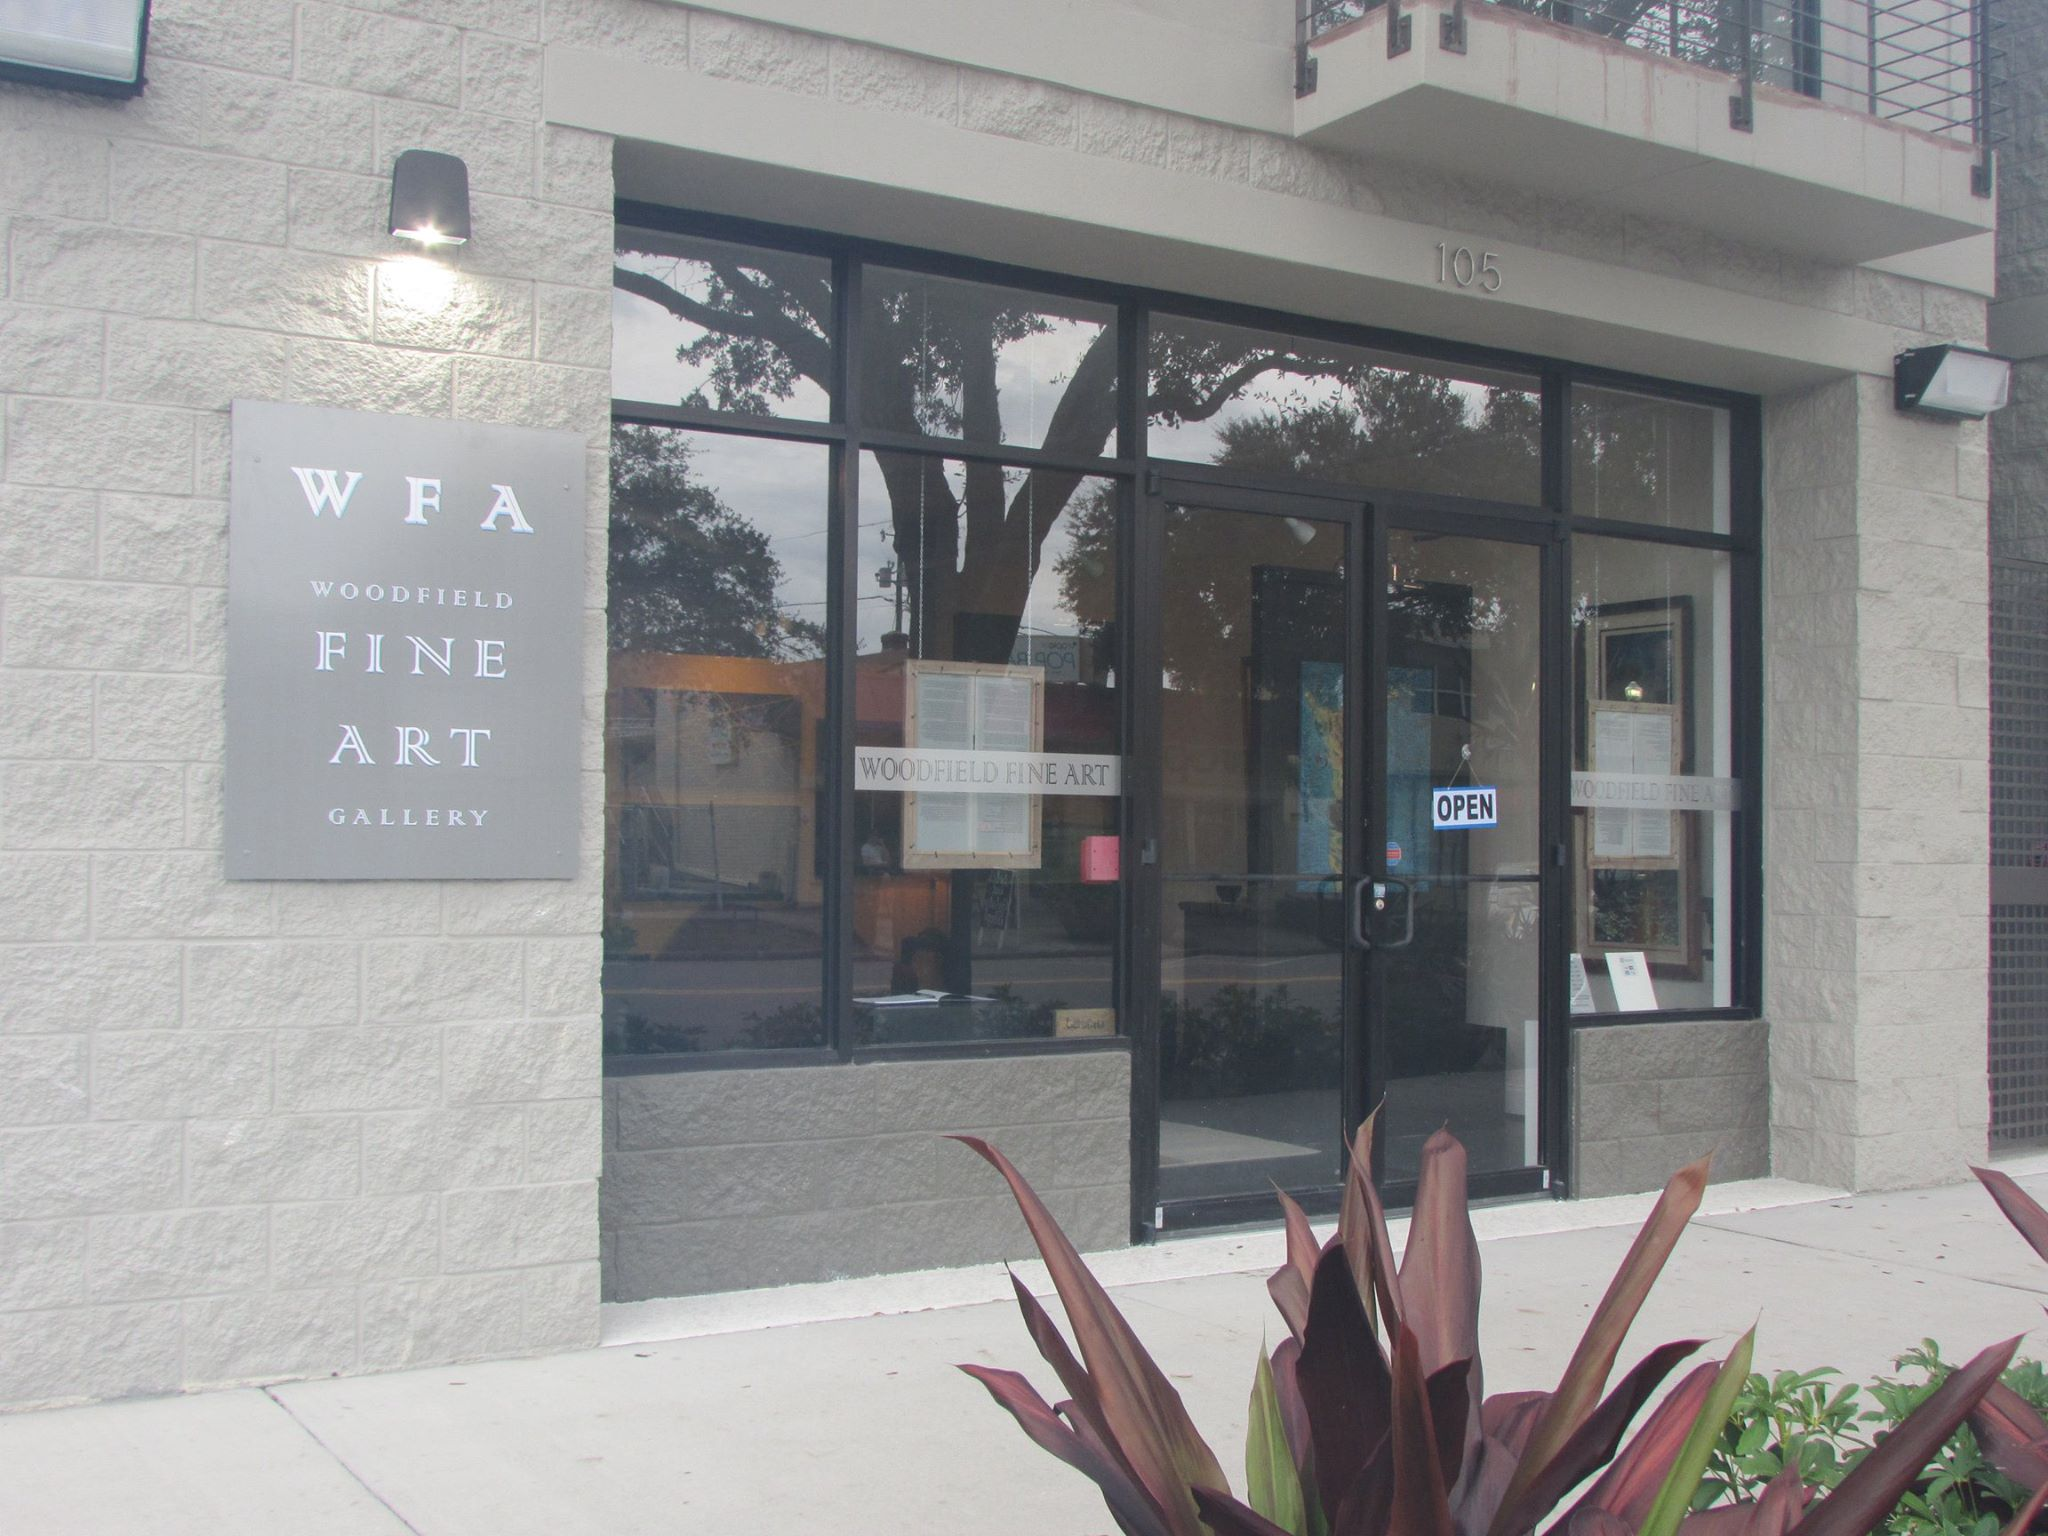 Woodfield Fine Art Gallery - Woodfield Fine Art Gallery has held true to its original intent to showcase only the original art of Tampa Bay area artists, where art enthusiasts can view and buy art that is not mass produced or tagged as collectible just because it has a number. The Gallery carries the works of both emerging as well as nationally renowned award winning artists. Most art media are represented. Paintings in oil, acrylic, watercolor, and mixed media combine with photography, sculpture, ceramics, and glass works to provide a complete gallery experience.